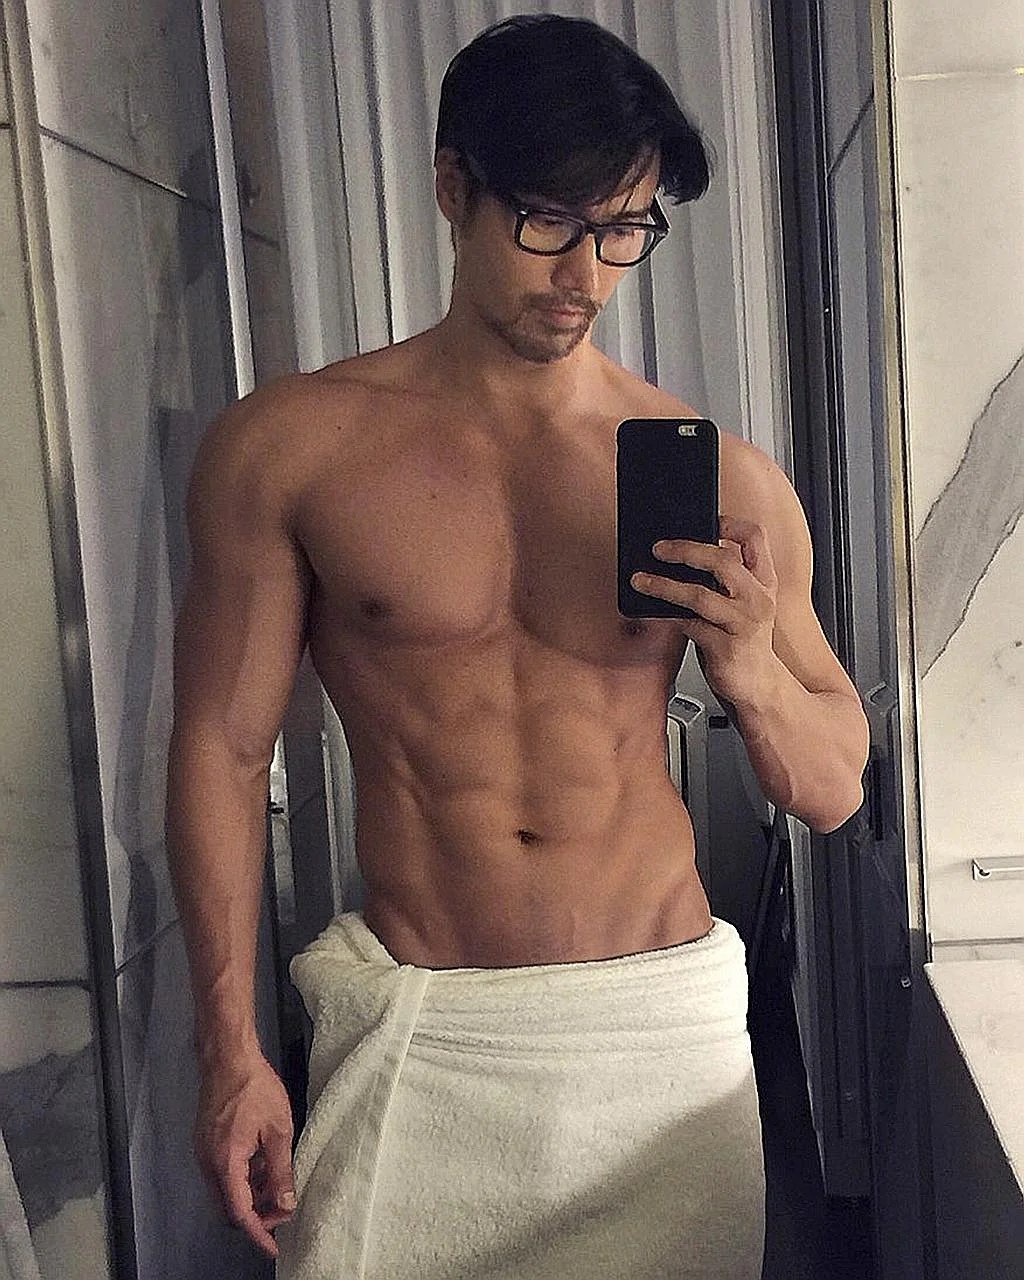 Tan has peppered his Instagram with holiday photos and about two dozen bare-bodied photos showing off his very impressive biceps and abs. He now has 424,000 followers.